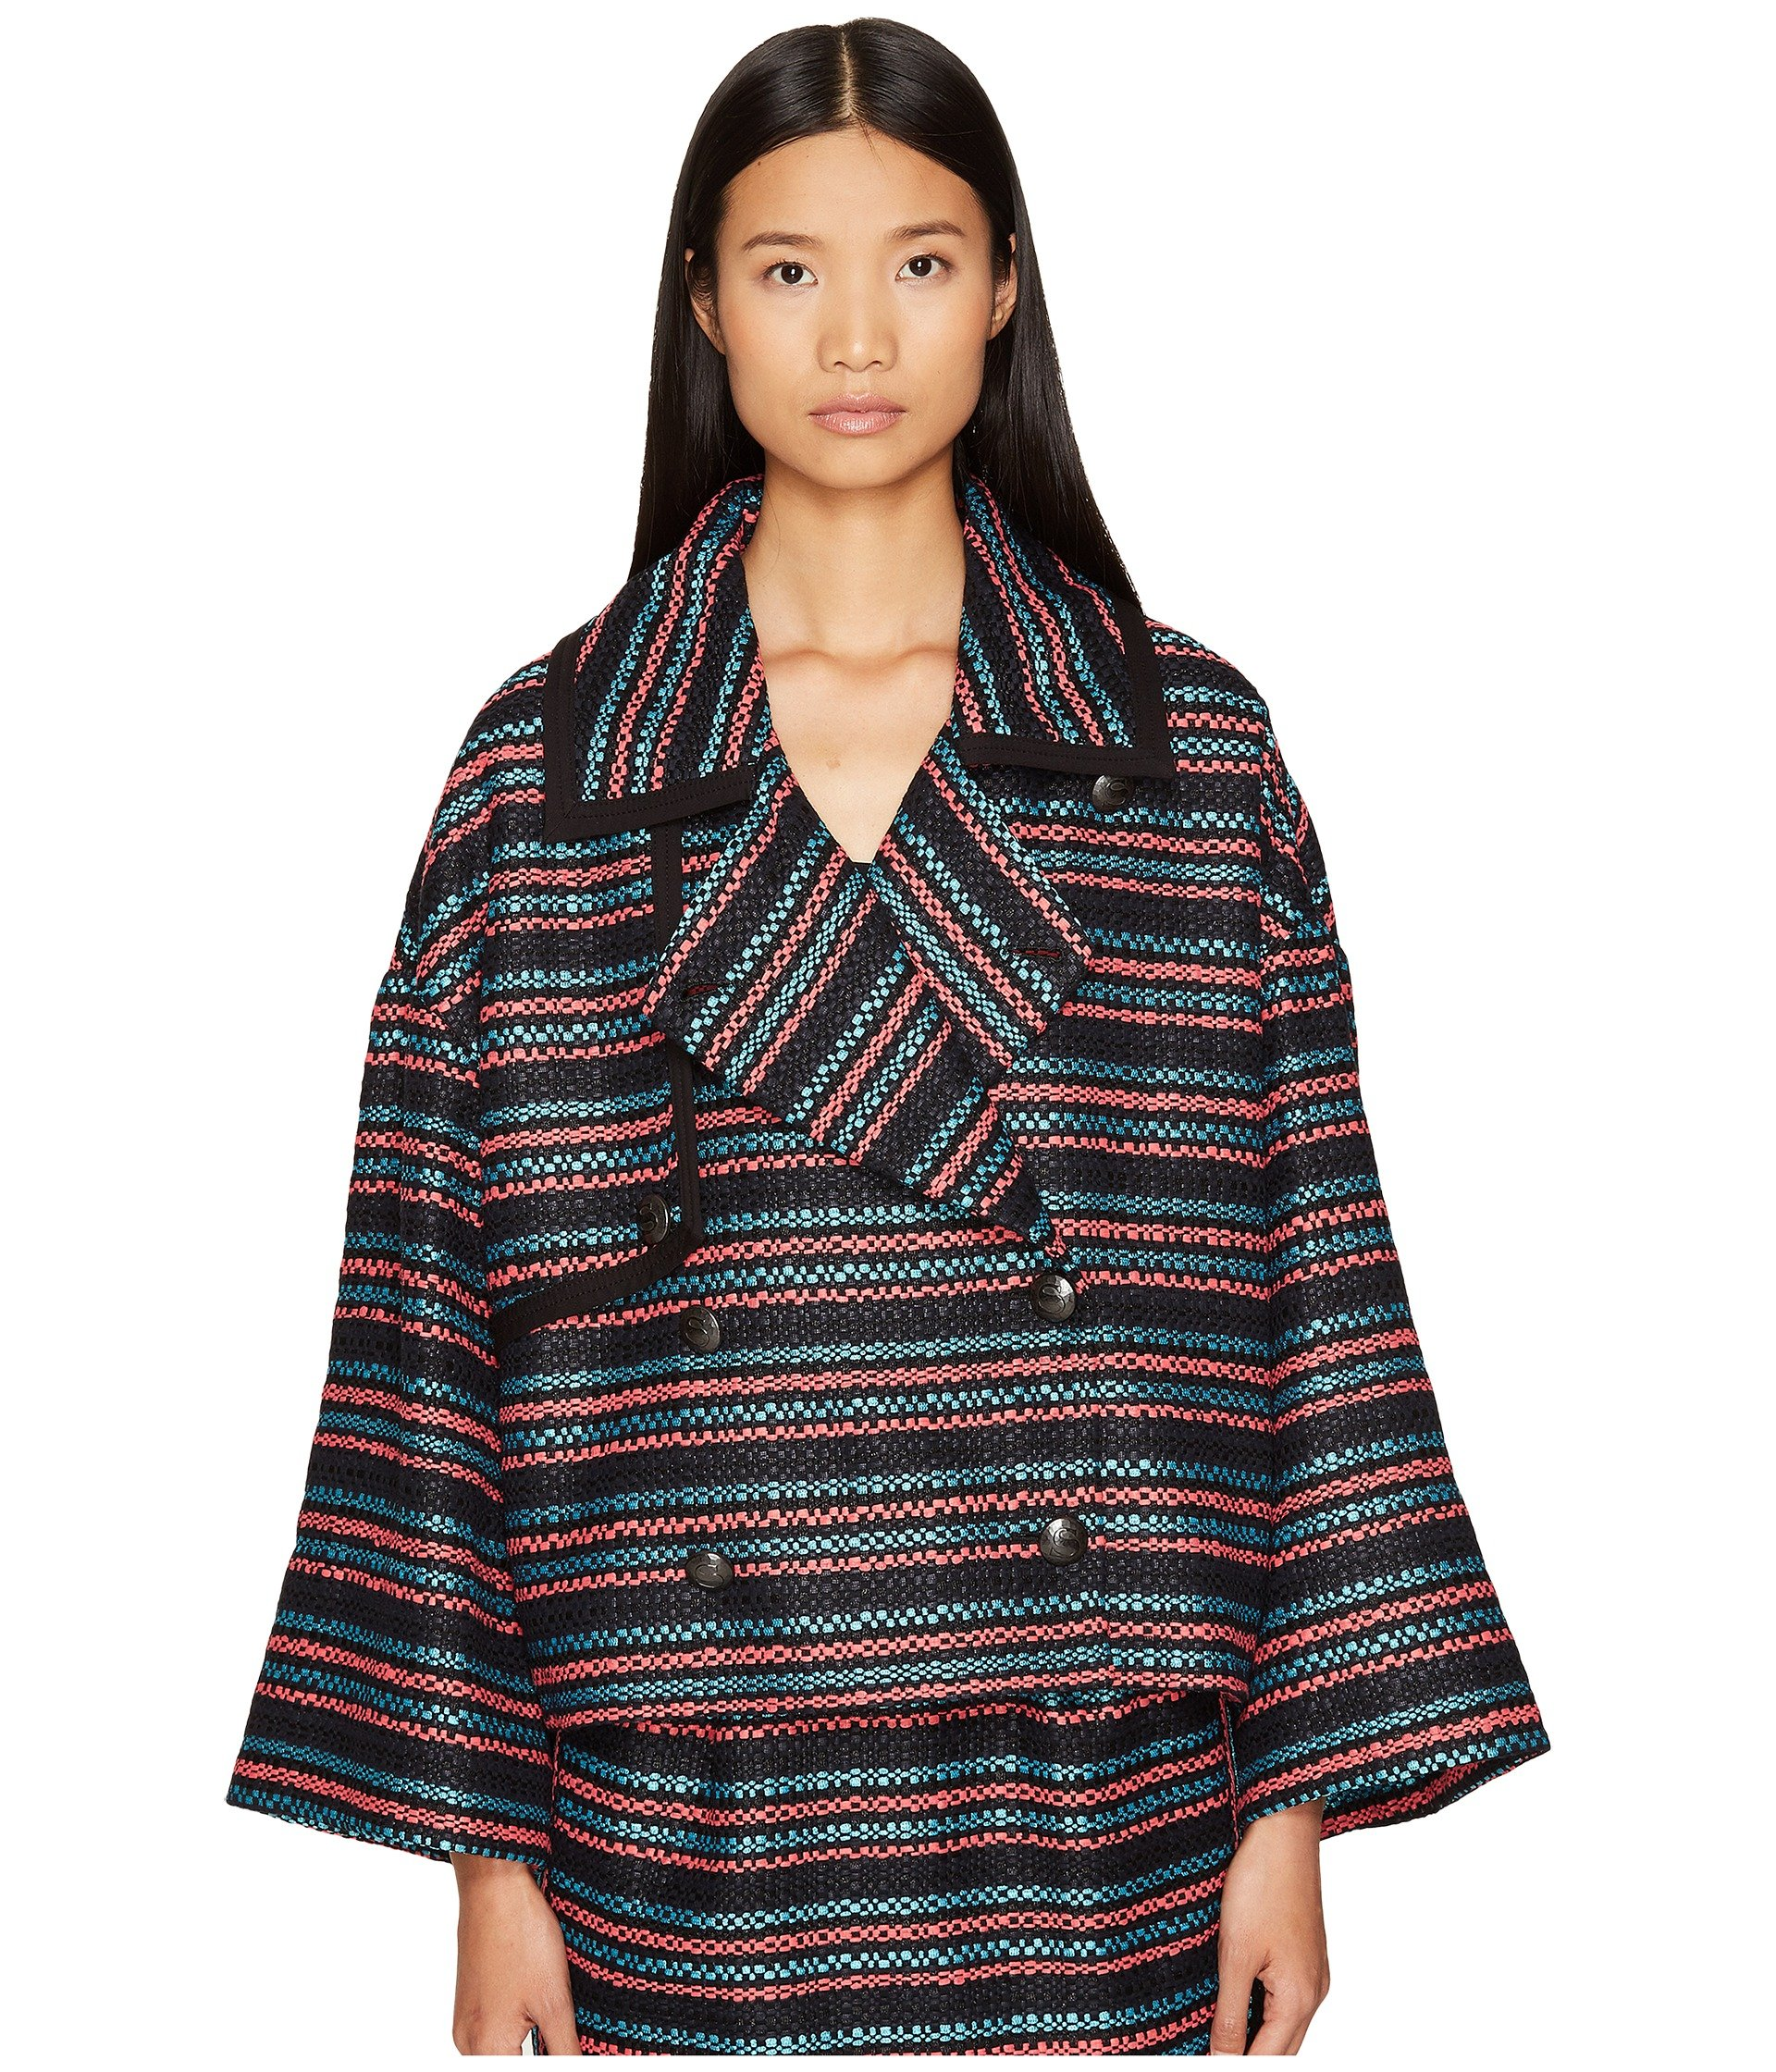 dcf157e13175 SONIA RYKIEL TWEED WITH JERSEY PIPING JACKET, MULTICOLOR STRIPE ...